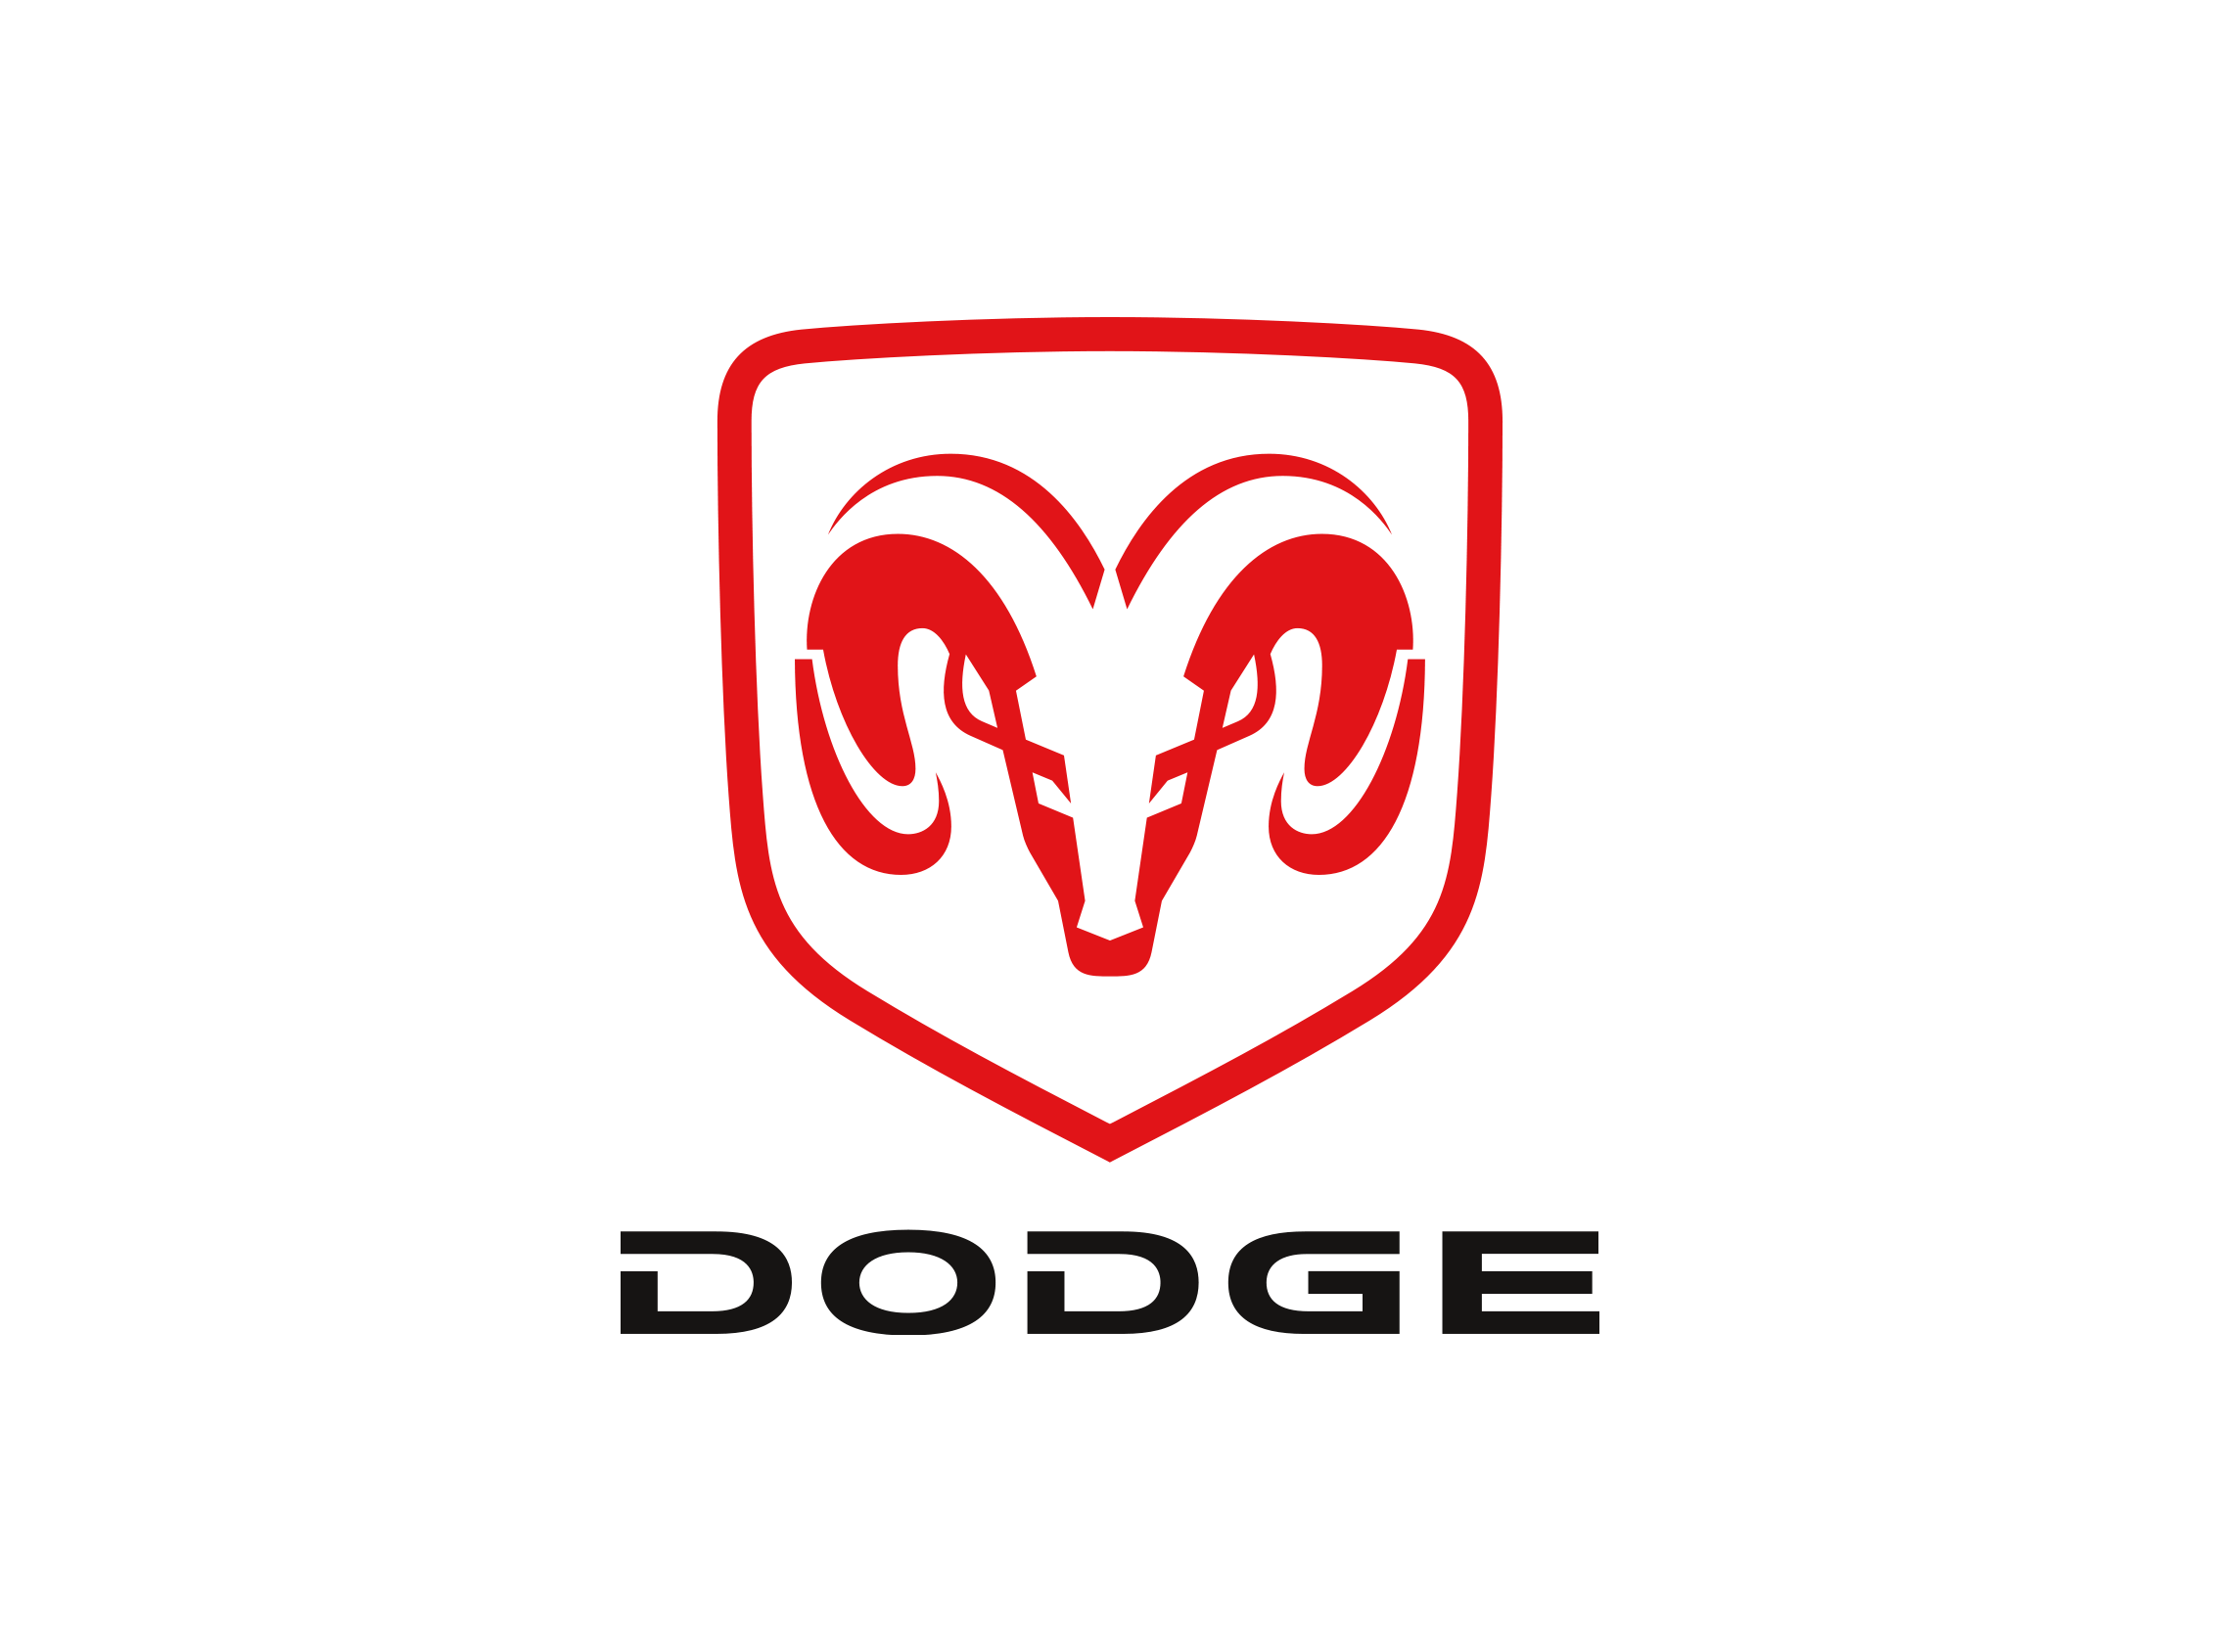 DODGE MOTOR IMPORT BRANDS VOITURE IMPORT USA MIAMI IMPORT VOITURE EUROP IMPORT USA MOTOR IMPORT7 - SEAT importation voiture des Etats Unis SEAT votre mandataire automobile usa